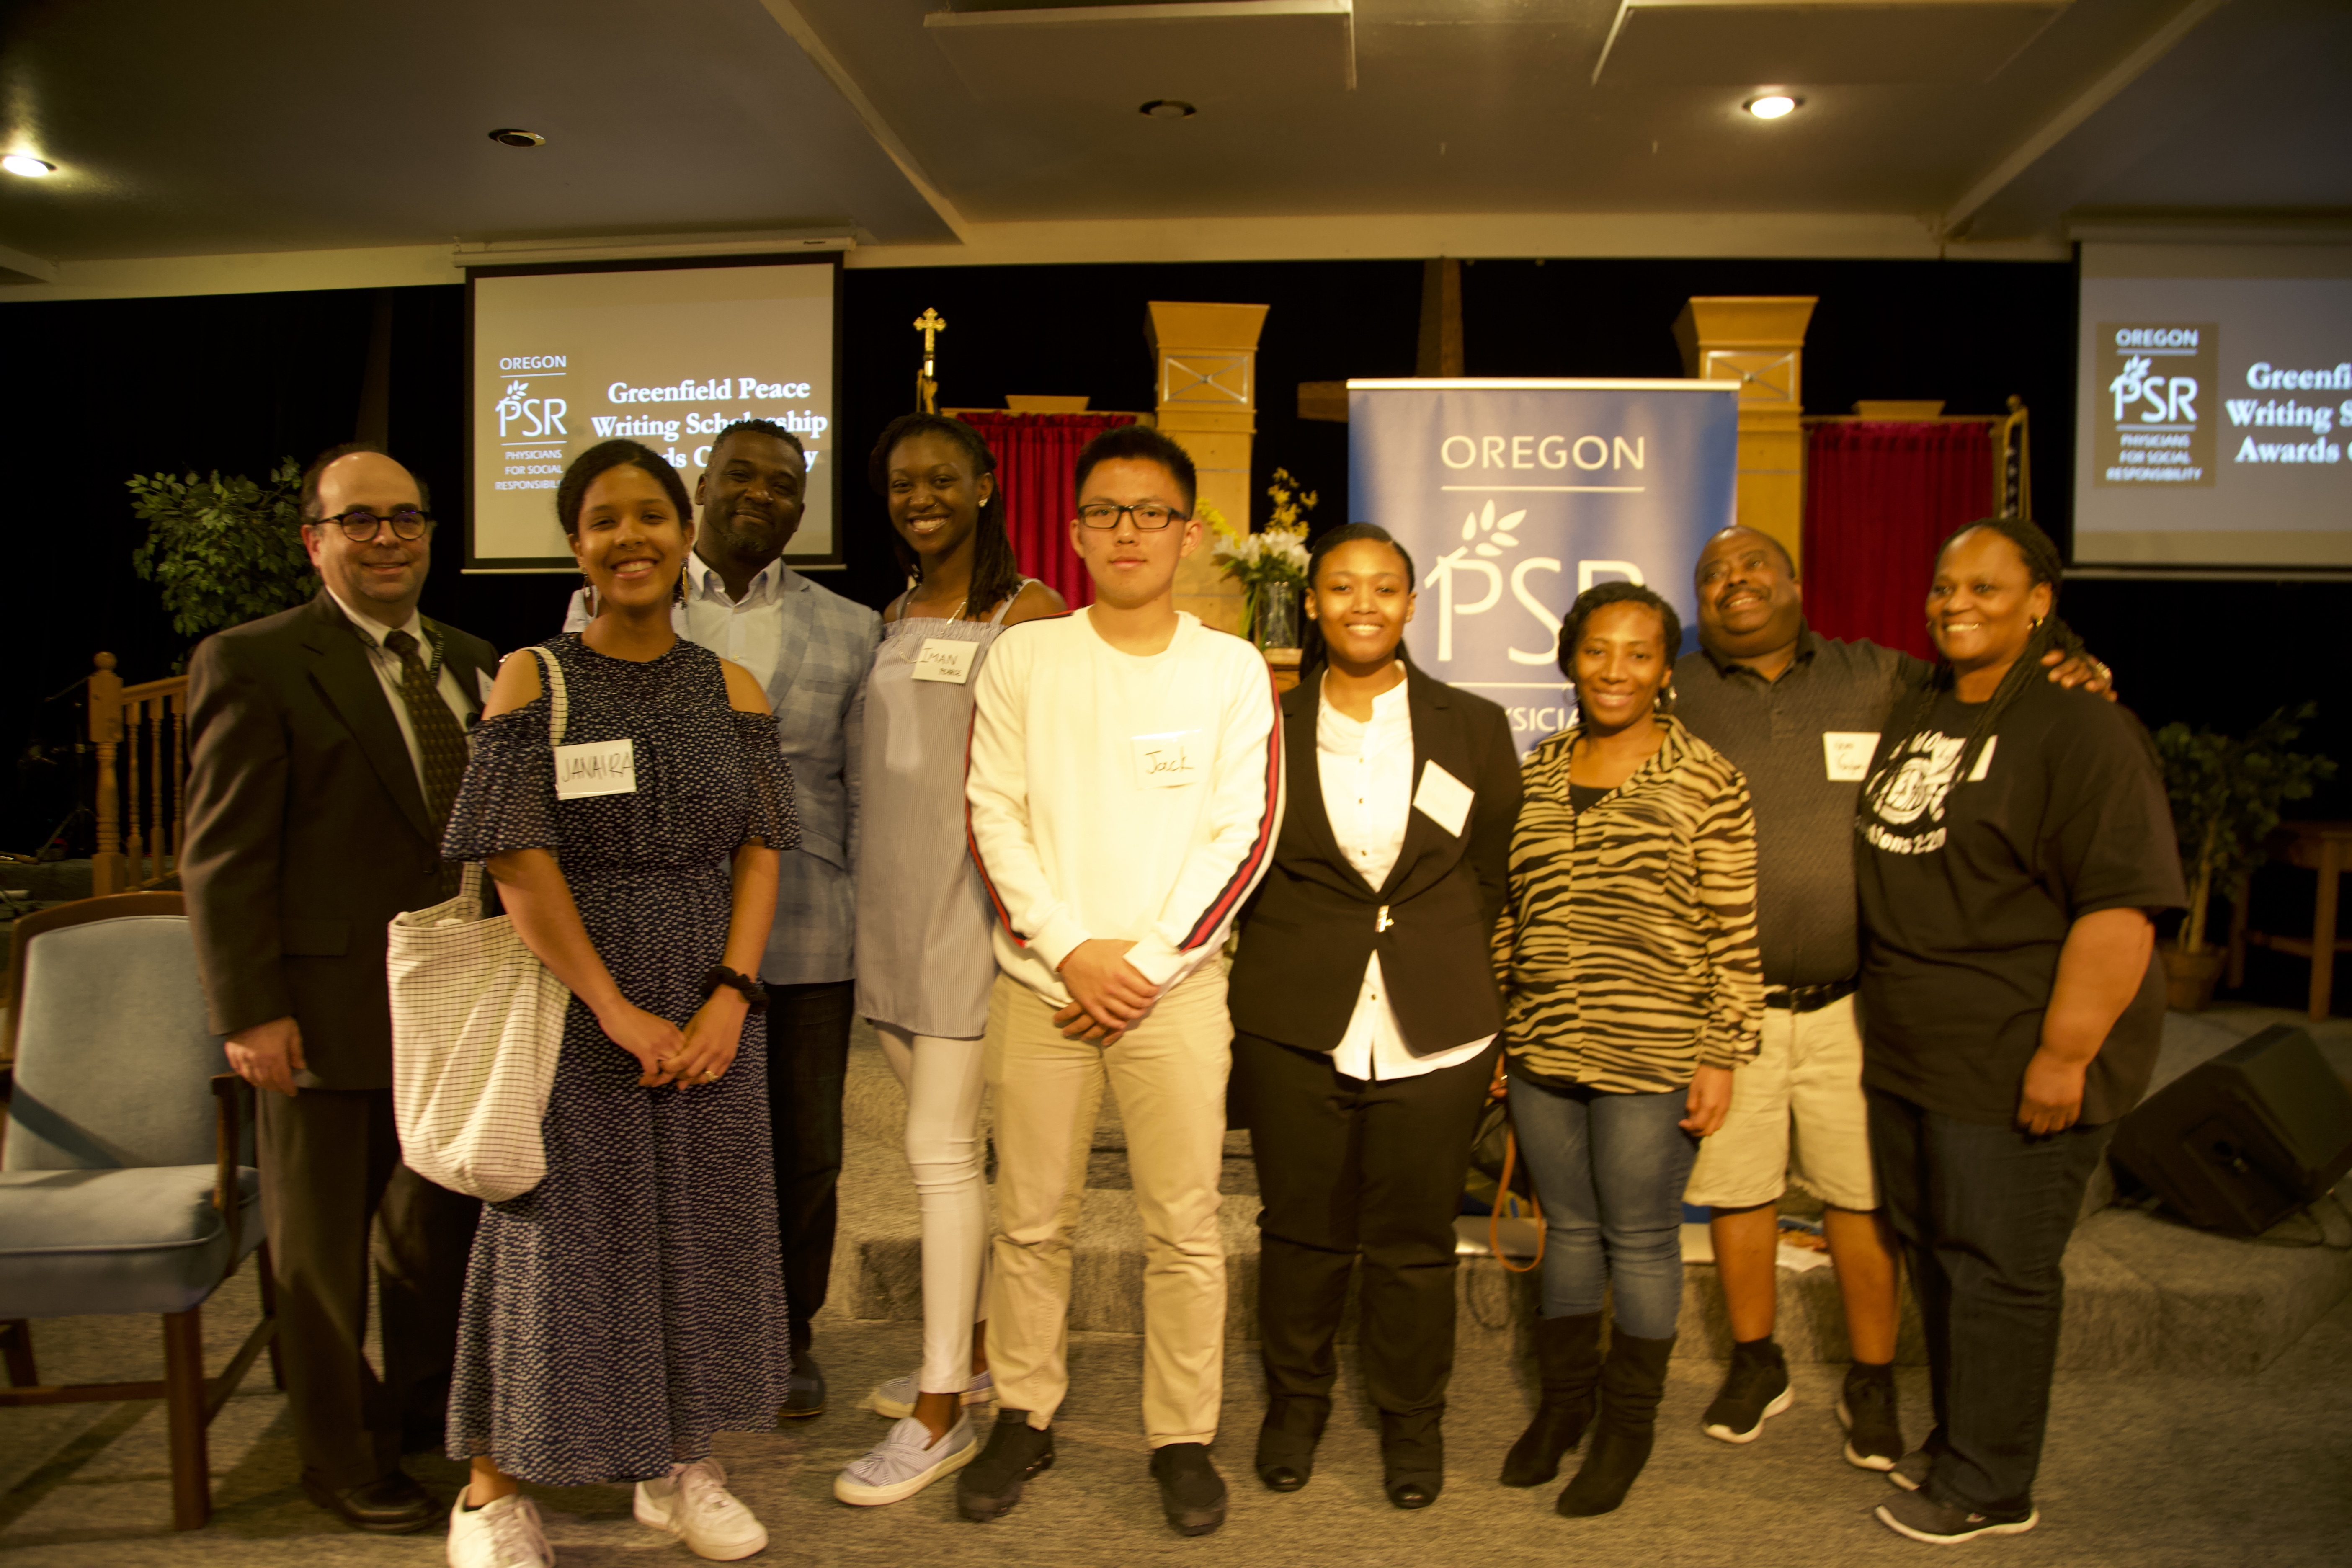 scholarship winners with their families and two of the judges at the awards ceremony